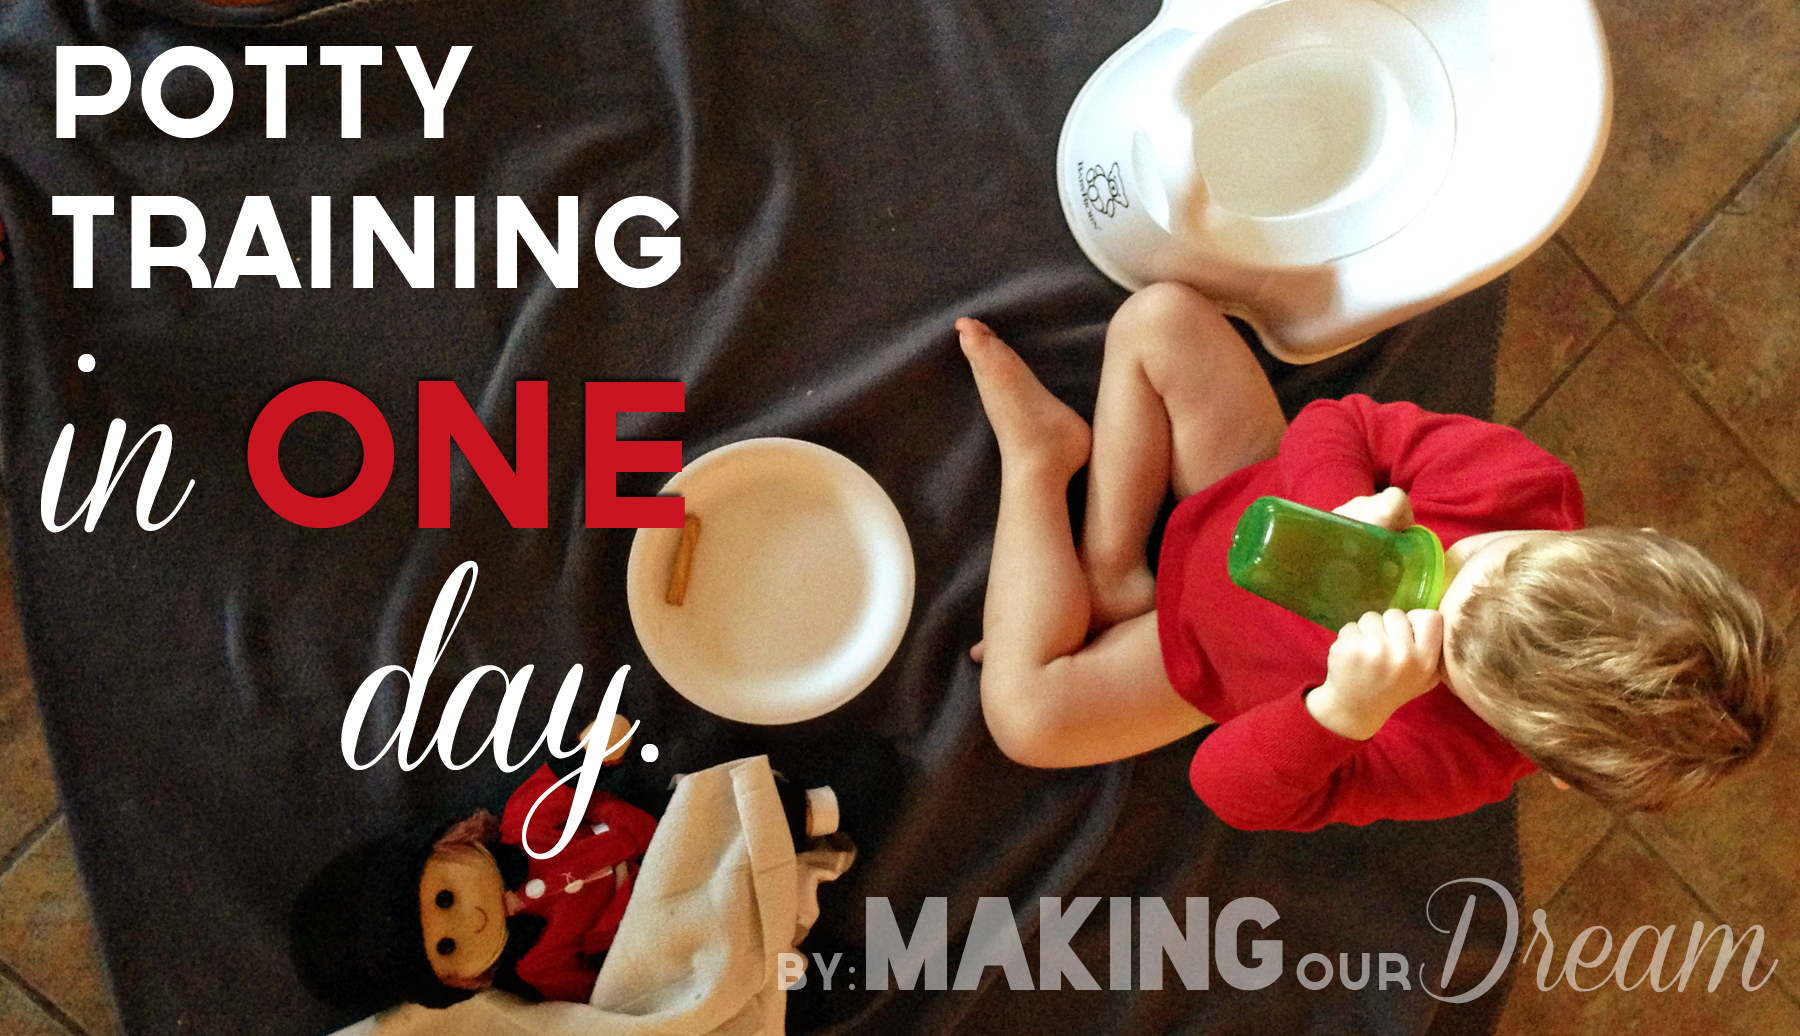 Potty Training in 1 Day by Making Our Dream